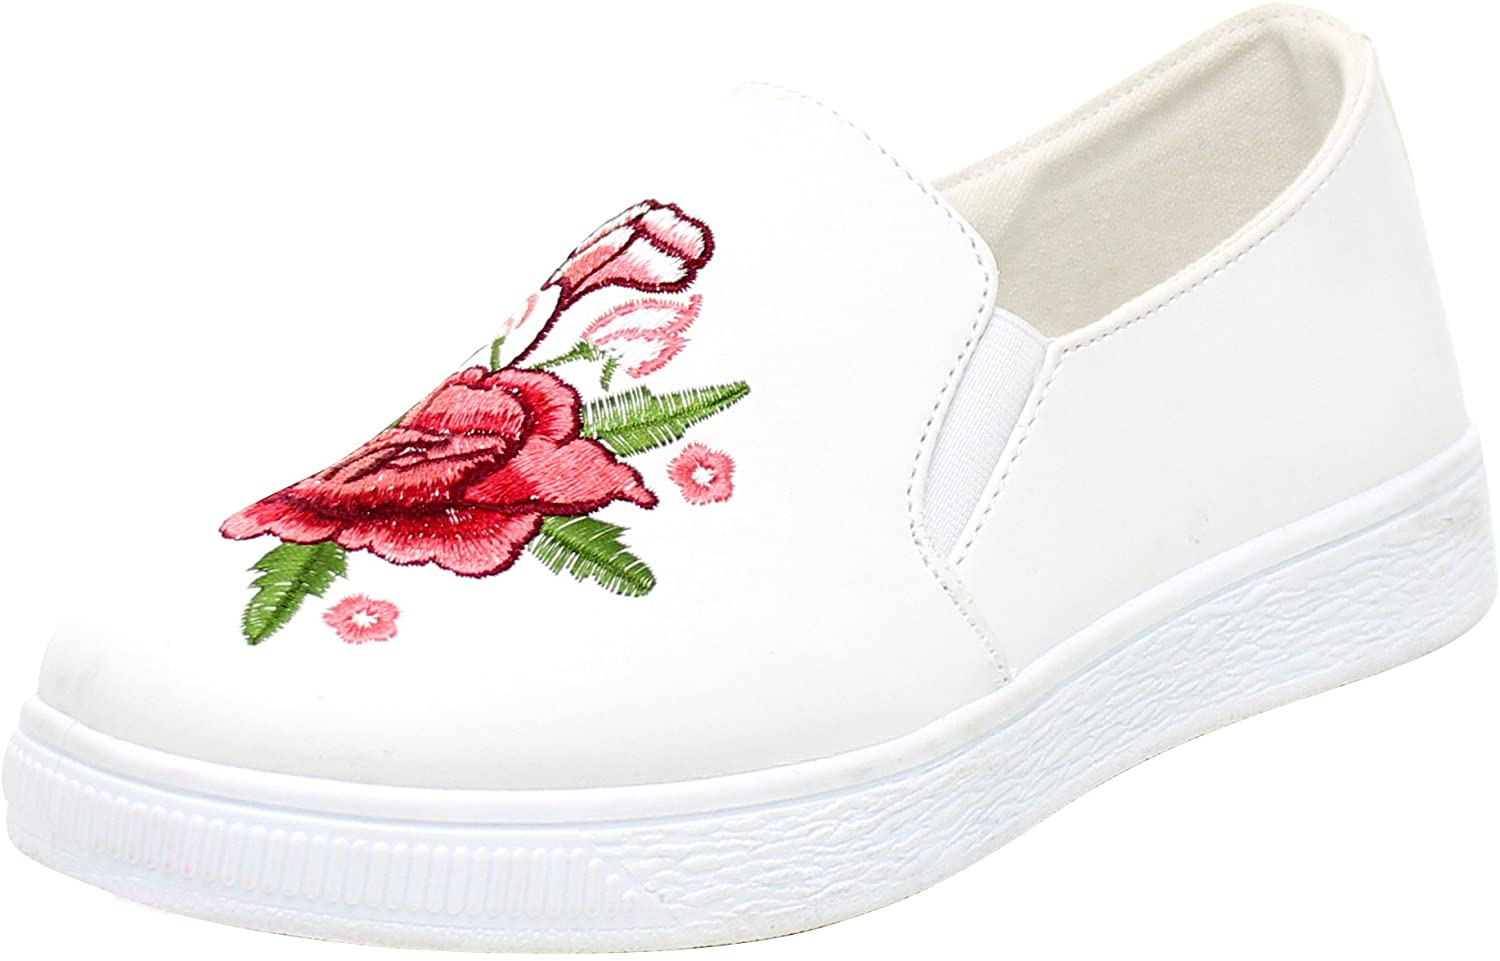 Cambridge Select Women's Floral Embroidered Stretch Slip-On Flatform Fashion Sneaker